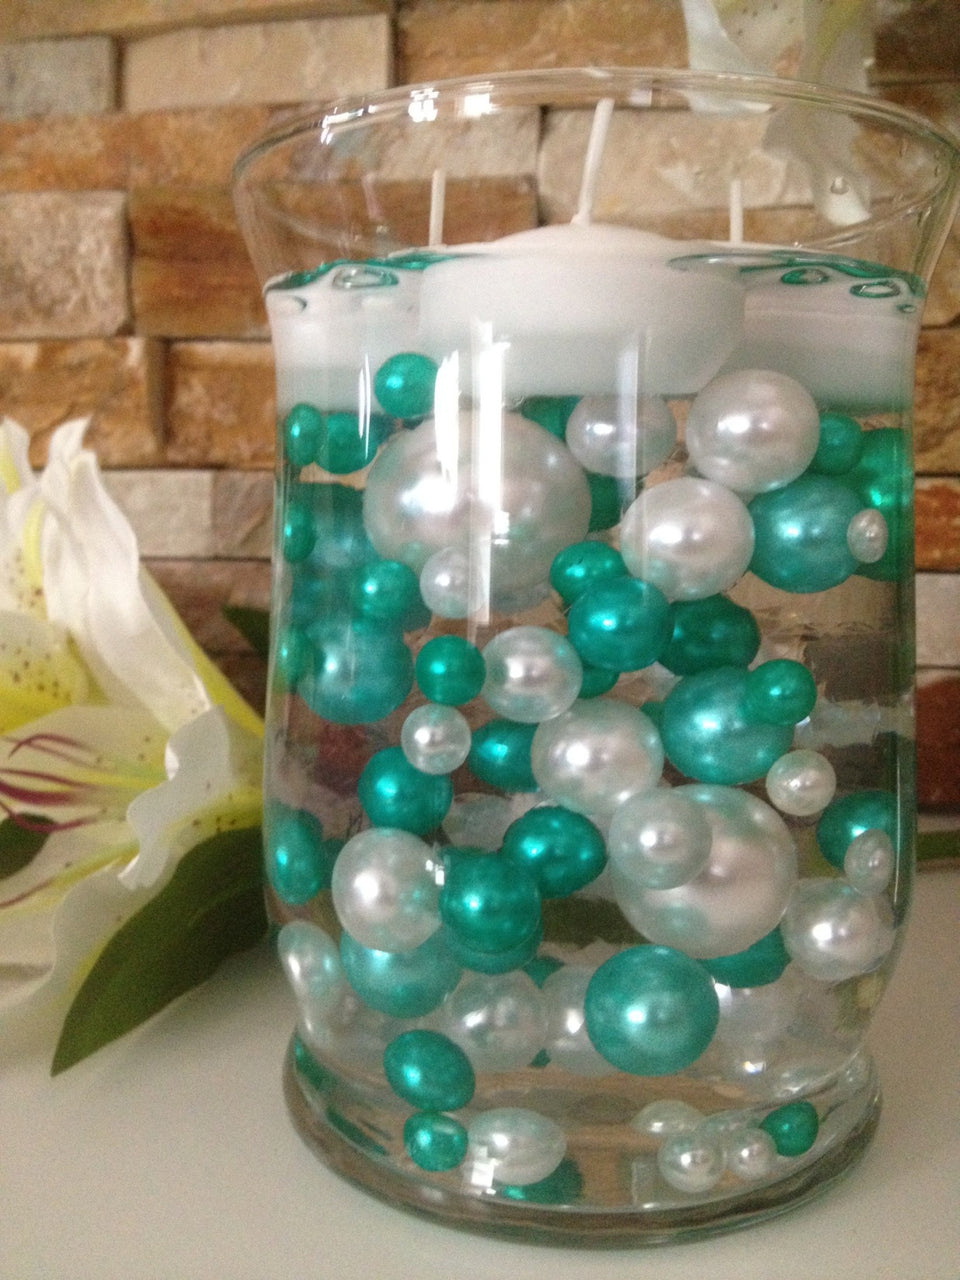 Vase Filler Pearls For Floating Pearl Centerpiece, Shamrock Green/White Pearls 80 Jumbo & Mix Size Pearls, No Hole Pearls